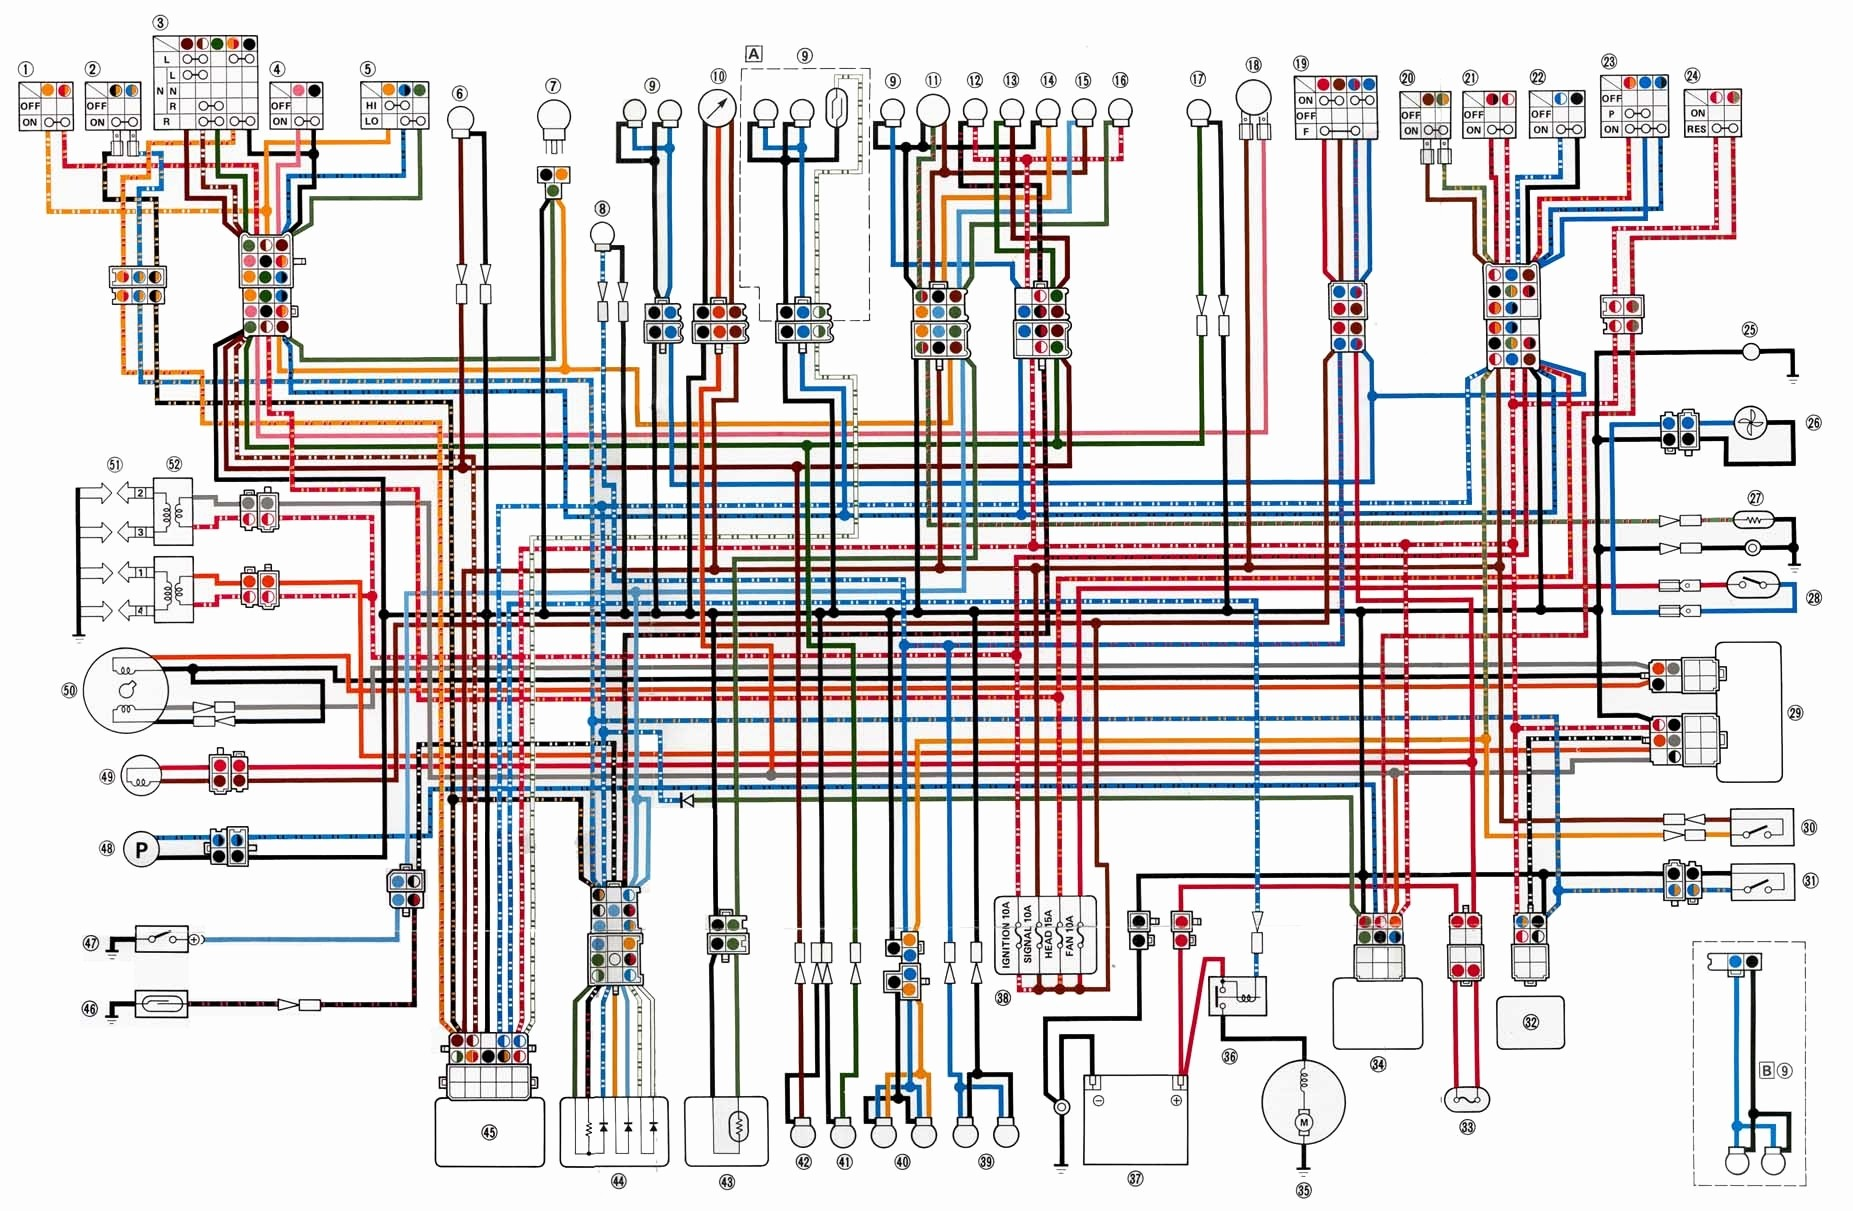 Full Size of Wiring Diagram Taylor Dunn Wiring Diagram Elegant Fazer Tech Stuff Color Codes